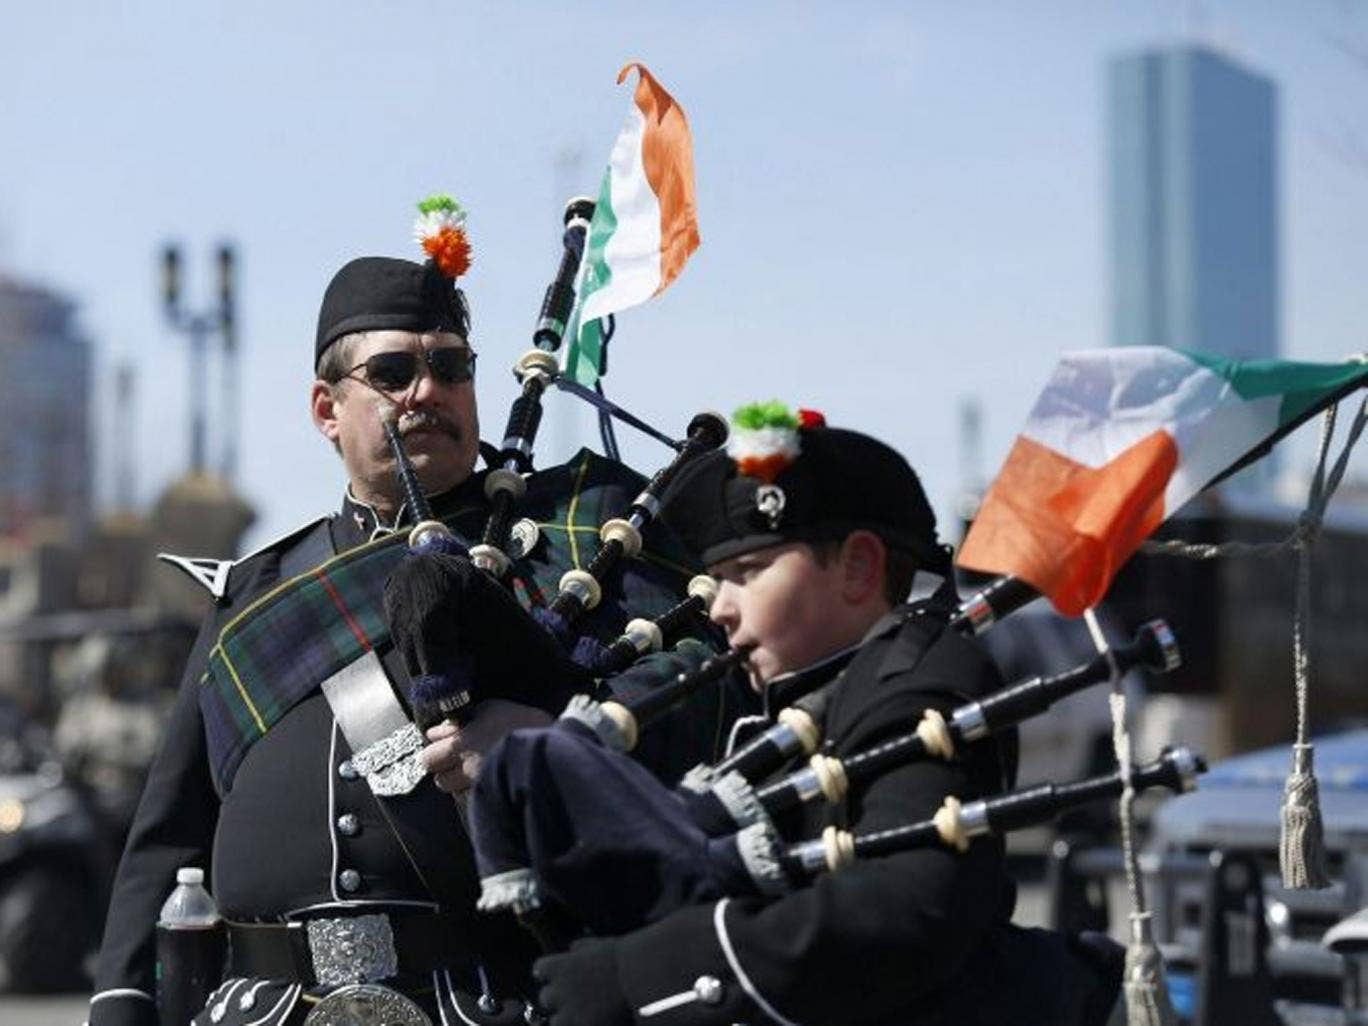 Members of the Quaboag Highlanders Pipes and Drums prepare to march down Broadway during the annual South Boston St. Patrick's Day parade in Boston, Massachusetts March 16, 2014. Boston's Irish-American mayor skipped the parade on Sunday after failing to